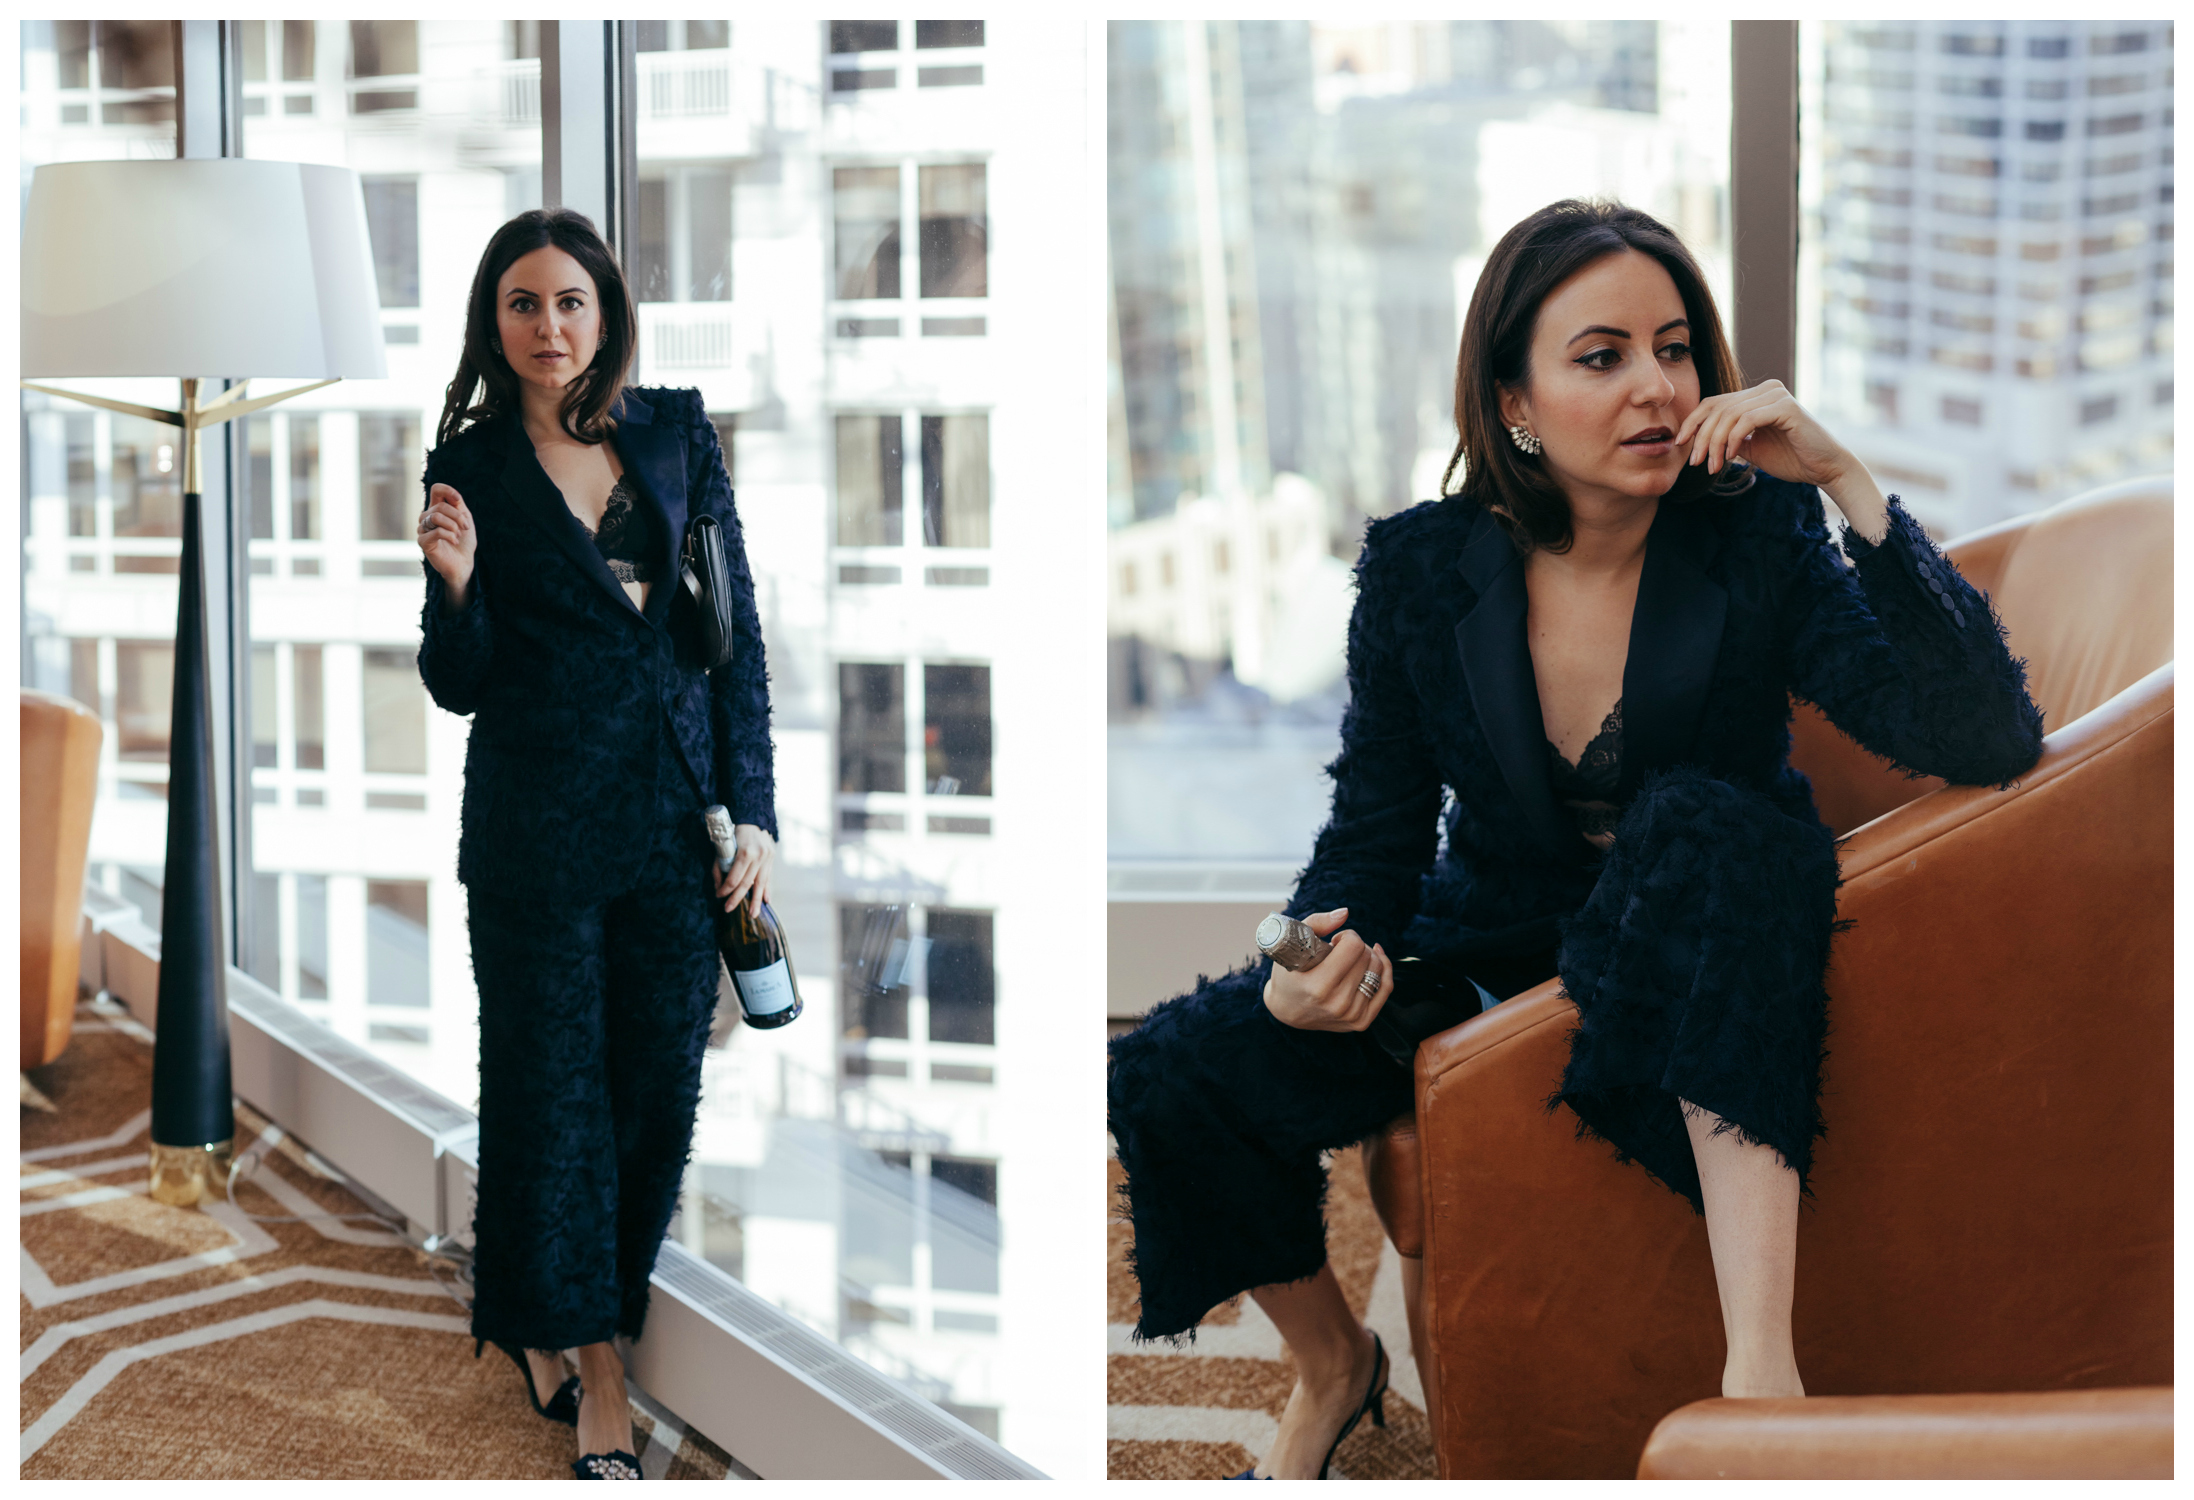 Yana Frigelis of NoMad Luxuries styles a navy blue suit for New Year's Eve Celebrations